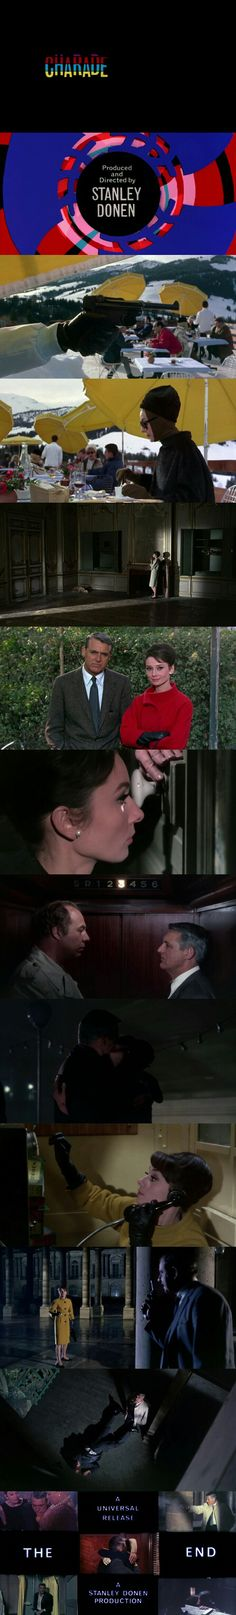 Charade (1963) Directed by Stanley Donen. Starring Cary Grant and Audrey Hepburn.